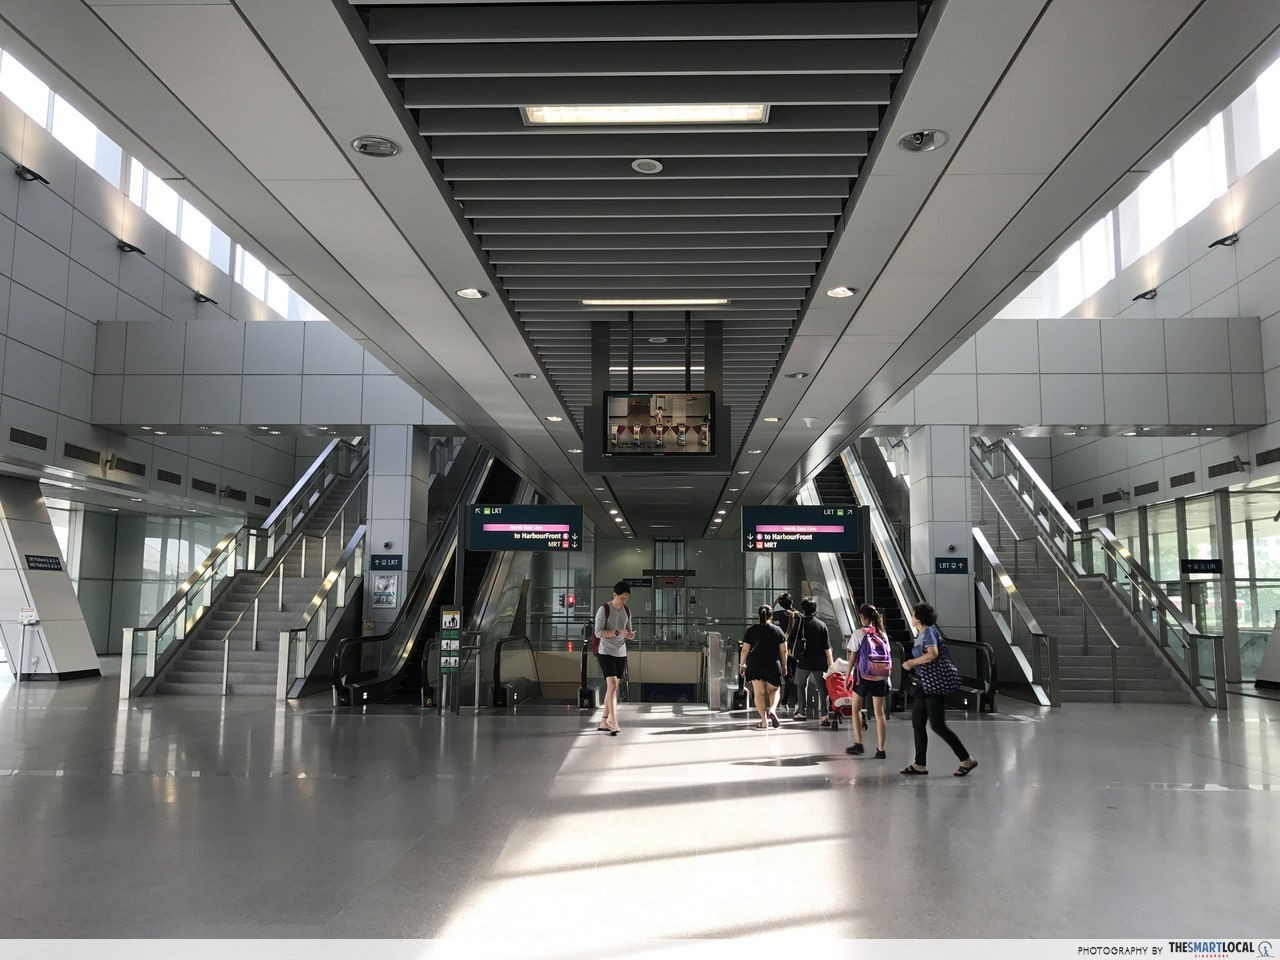 10 Lesser-Known Facts About The History Of MRTs In Singapore